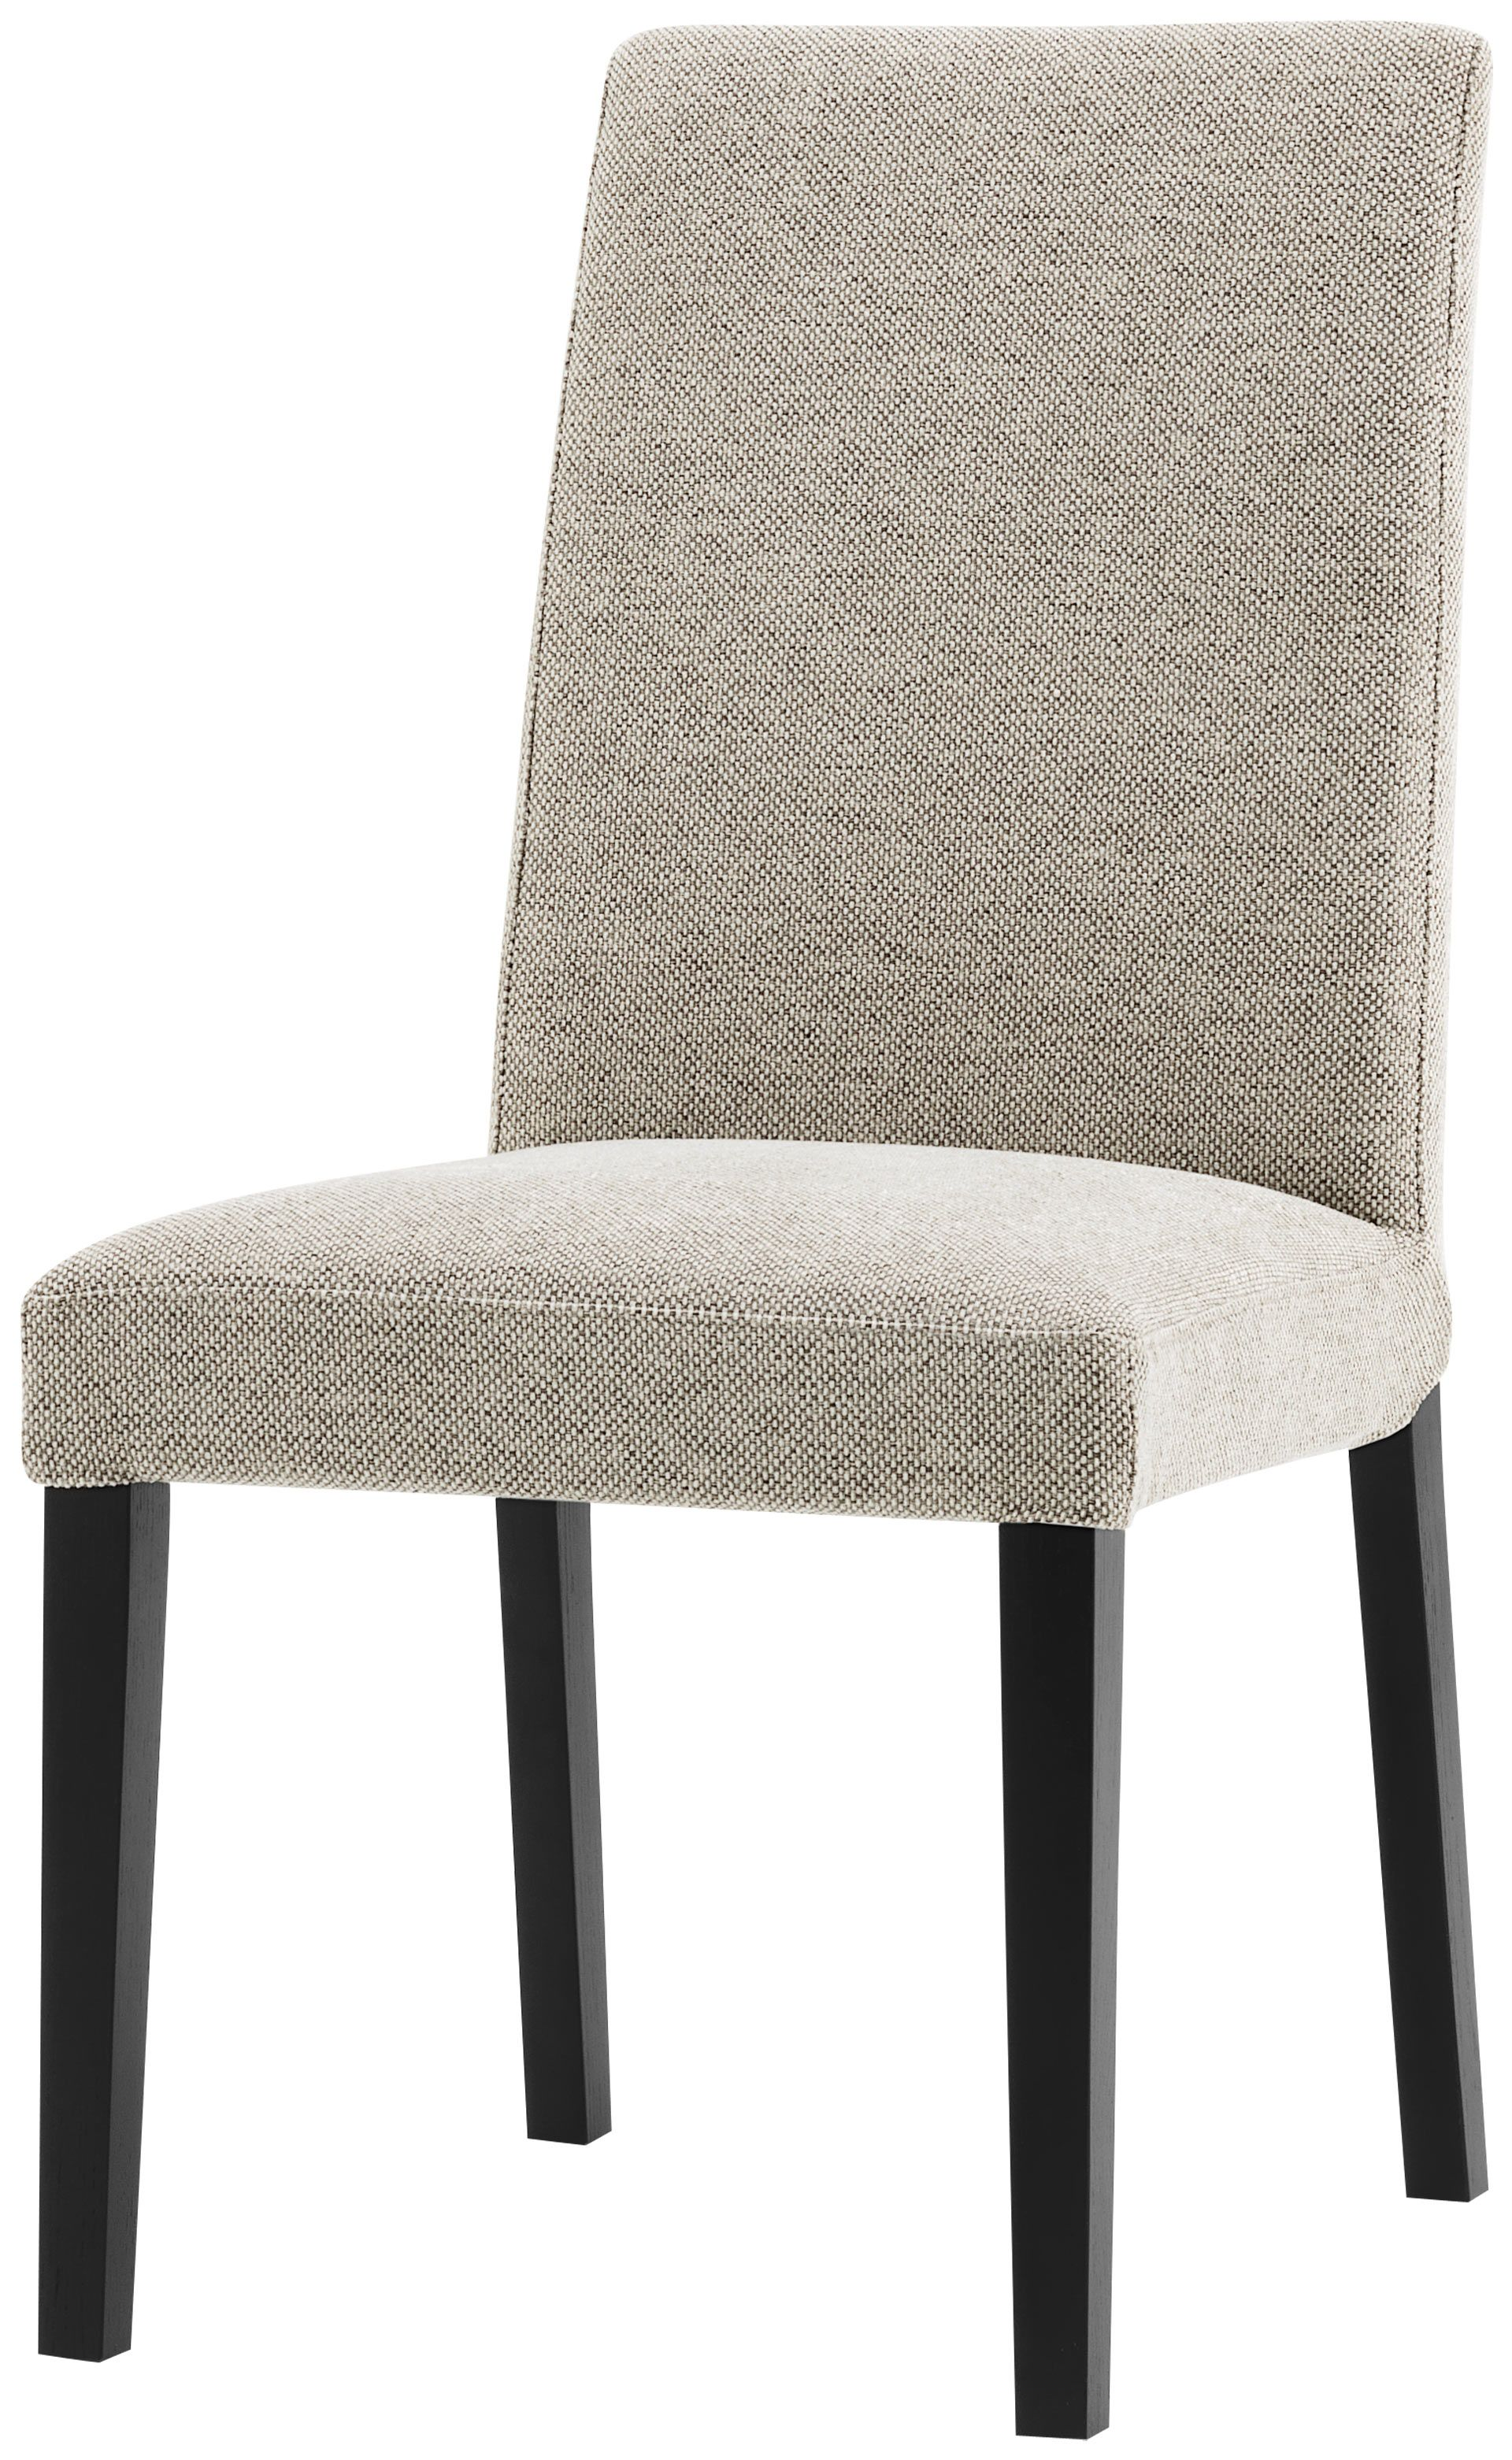 Modern Dining Chairs - Contemporary Dining Chairs - BoConcept ...